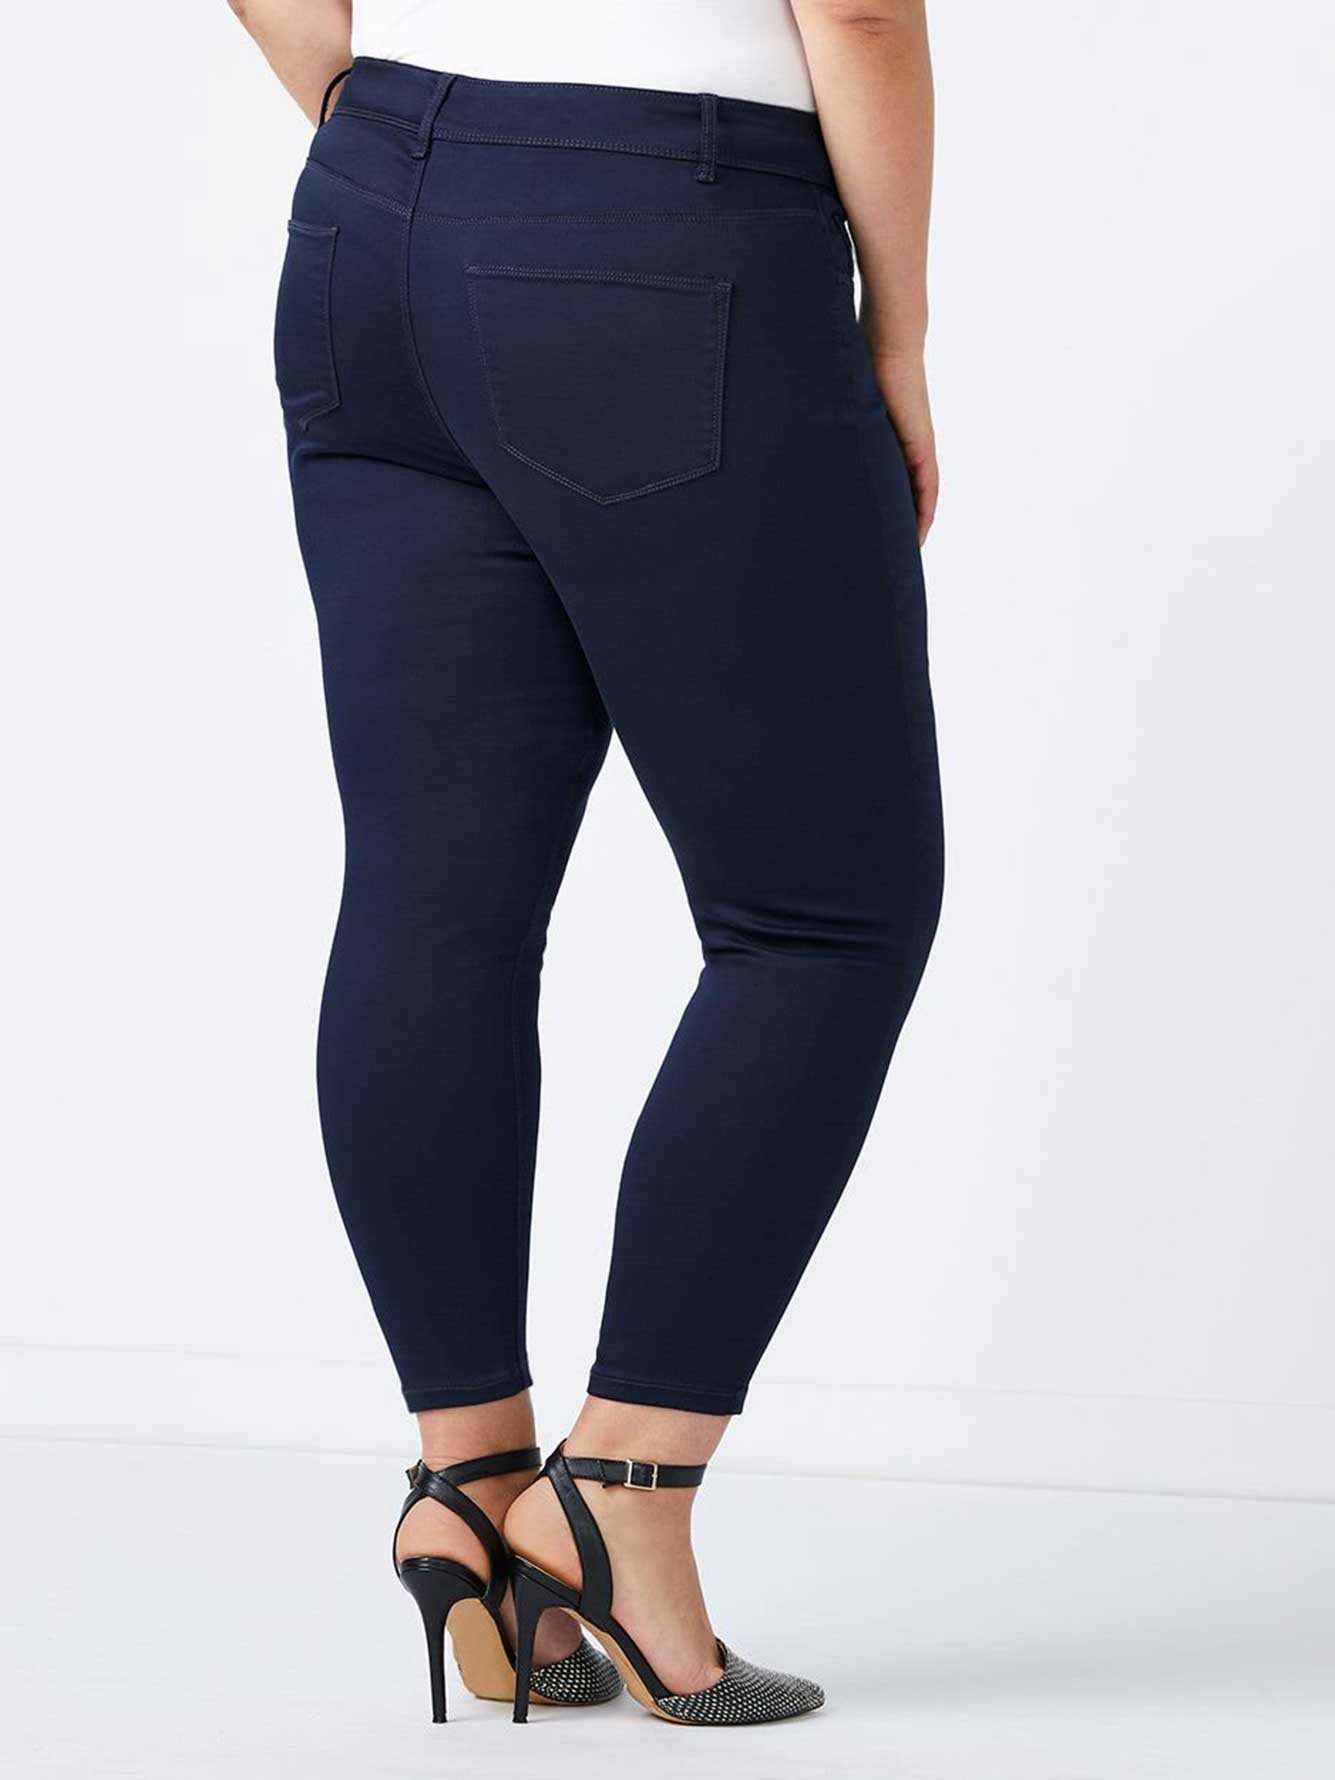 Petite - Superstretch Jean Legging - In Every Story